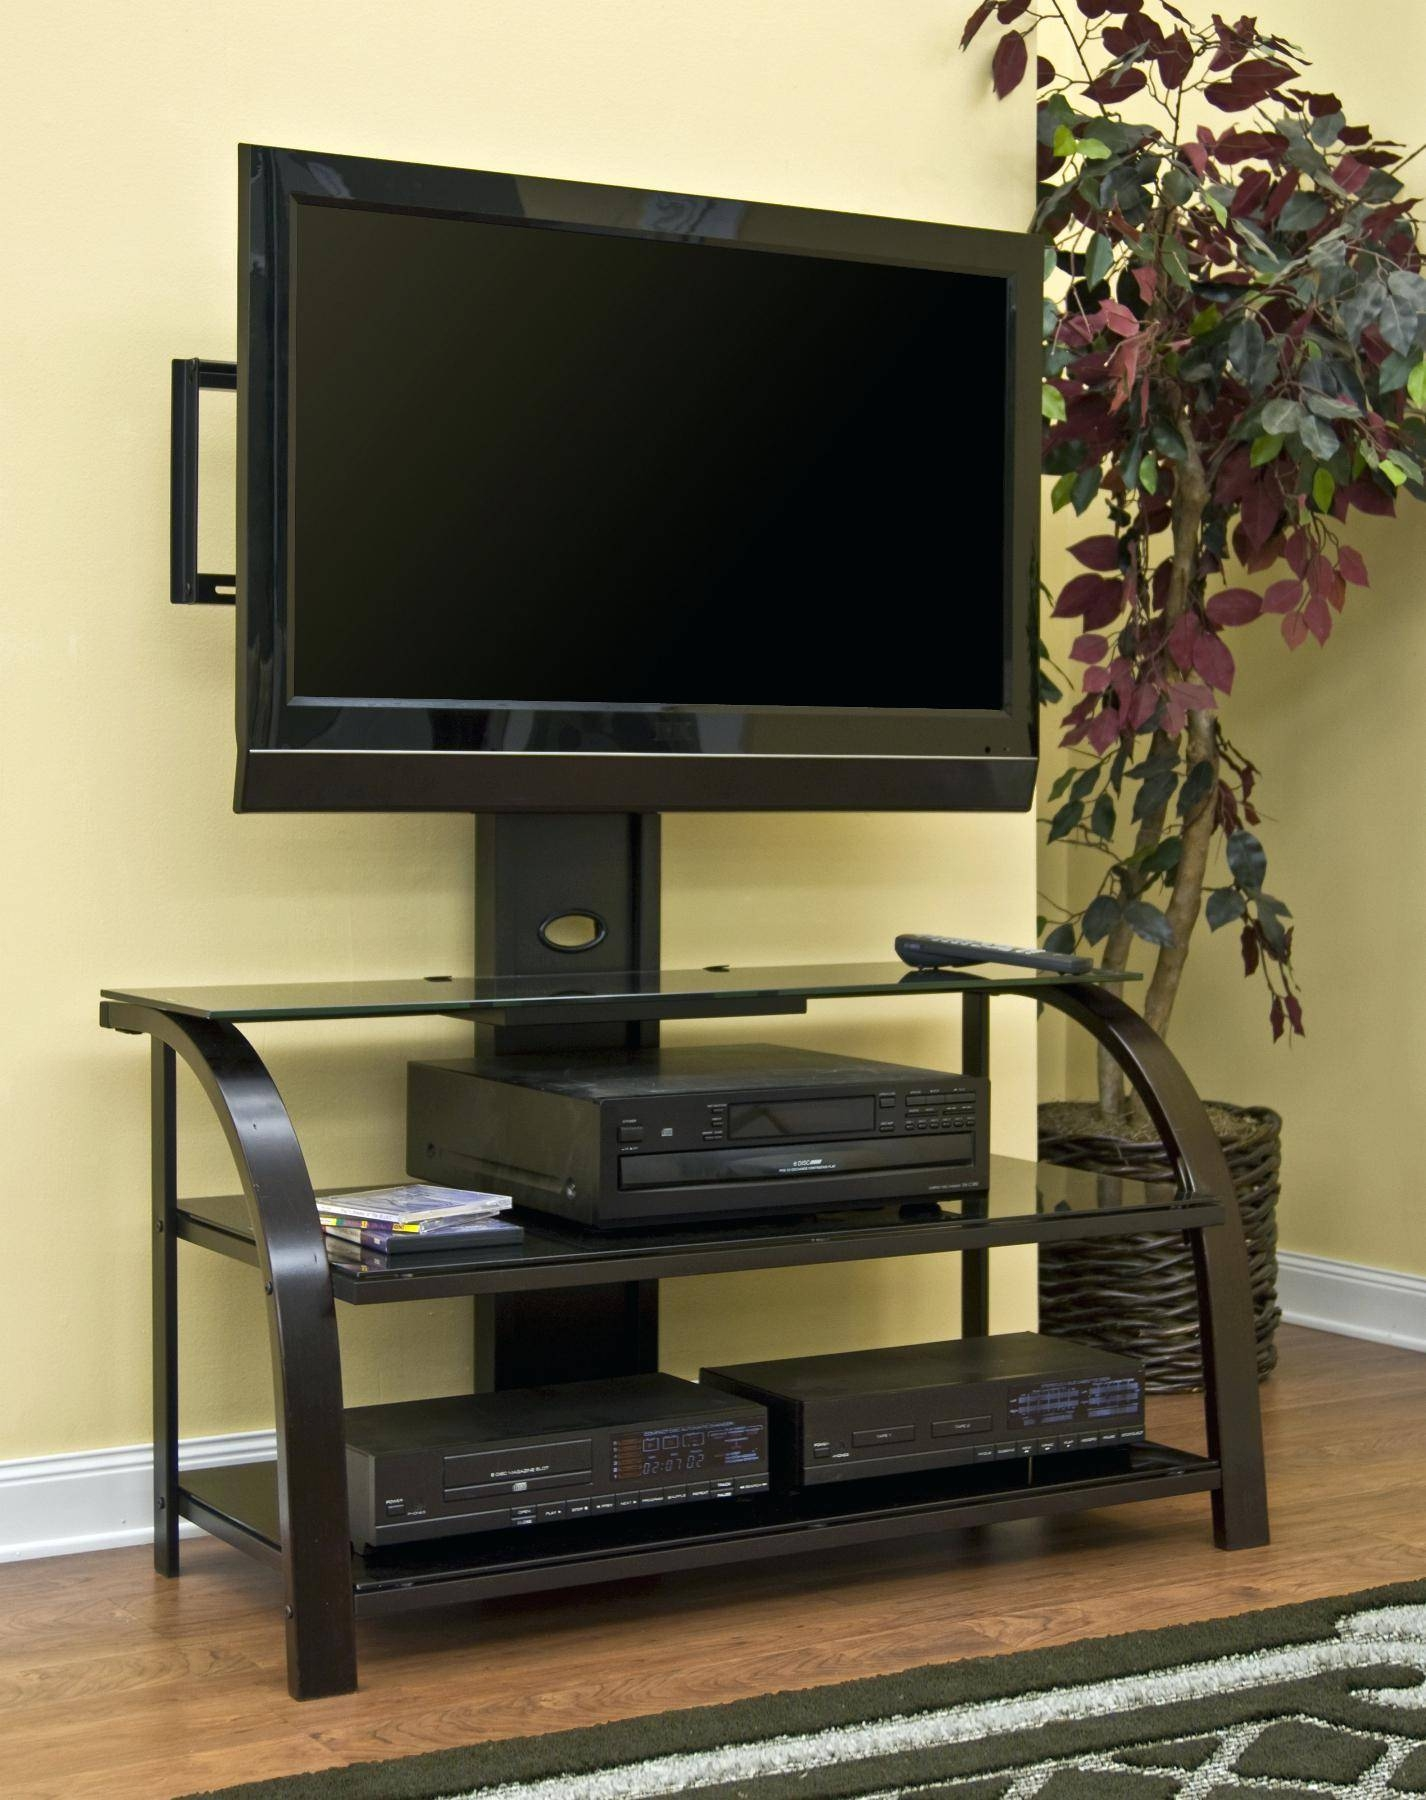 Tv Stand : 90 Country Wall Decor For Living Room White Gloss Wood in Tv Stands With Storage Baskets (Image 7 of 15)